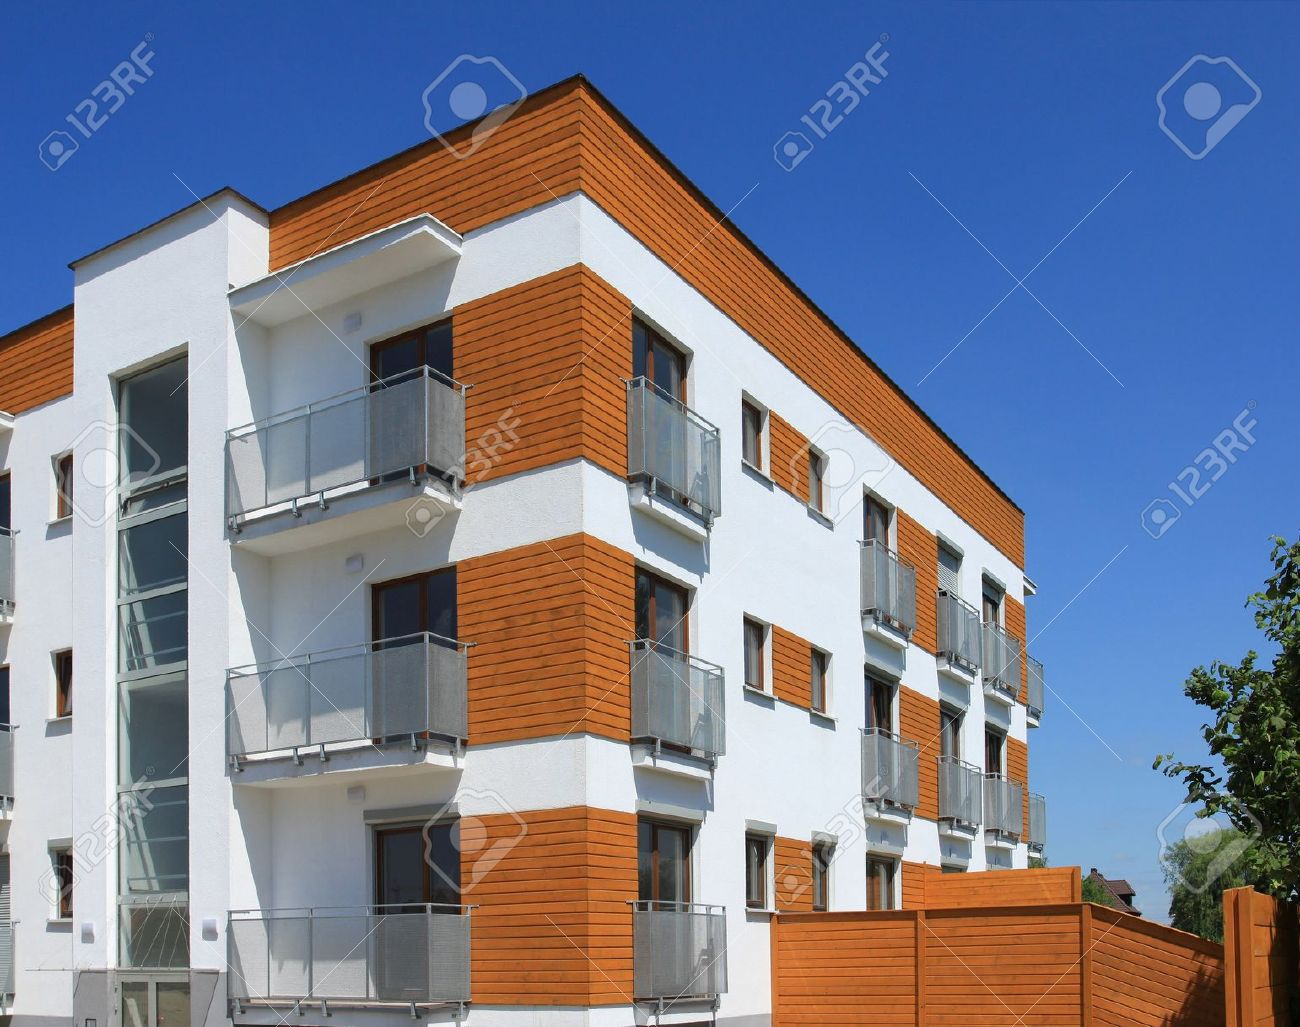 Apartment Building Images